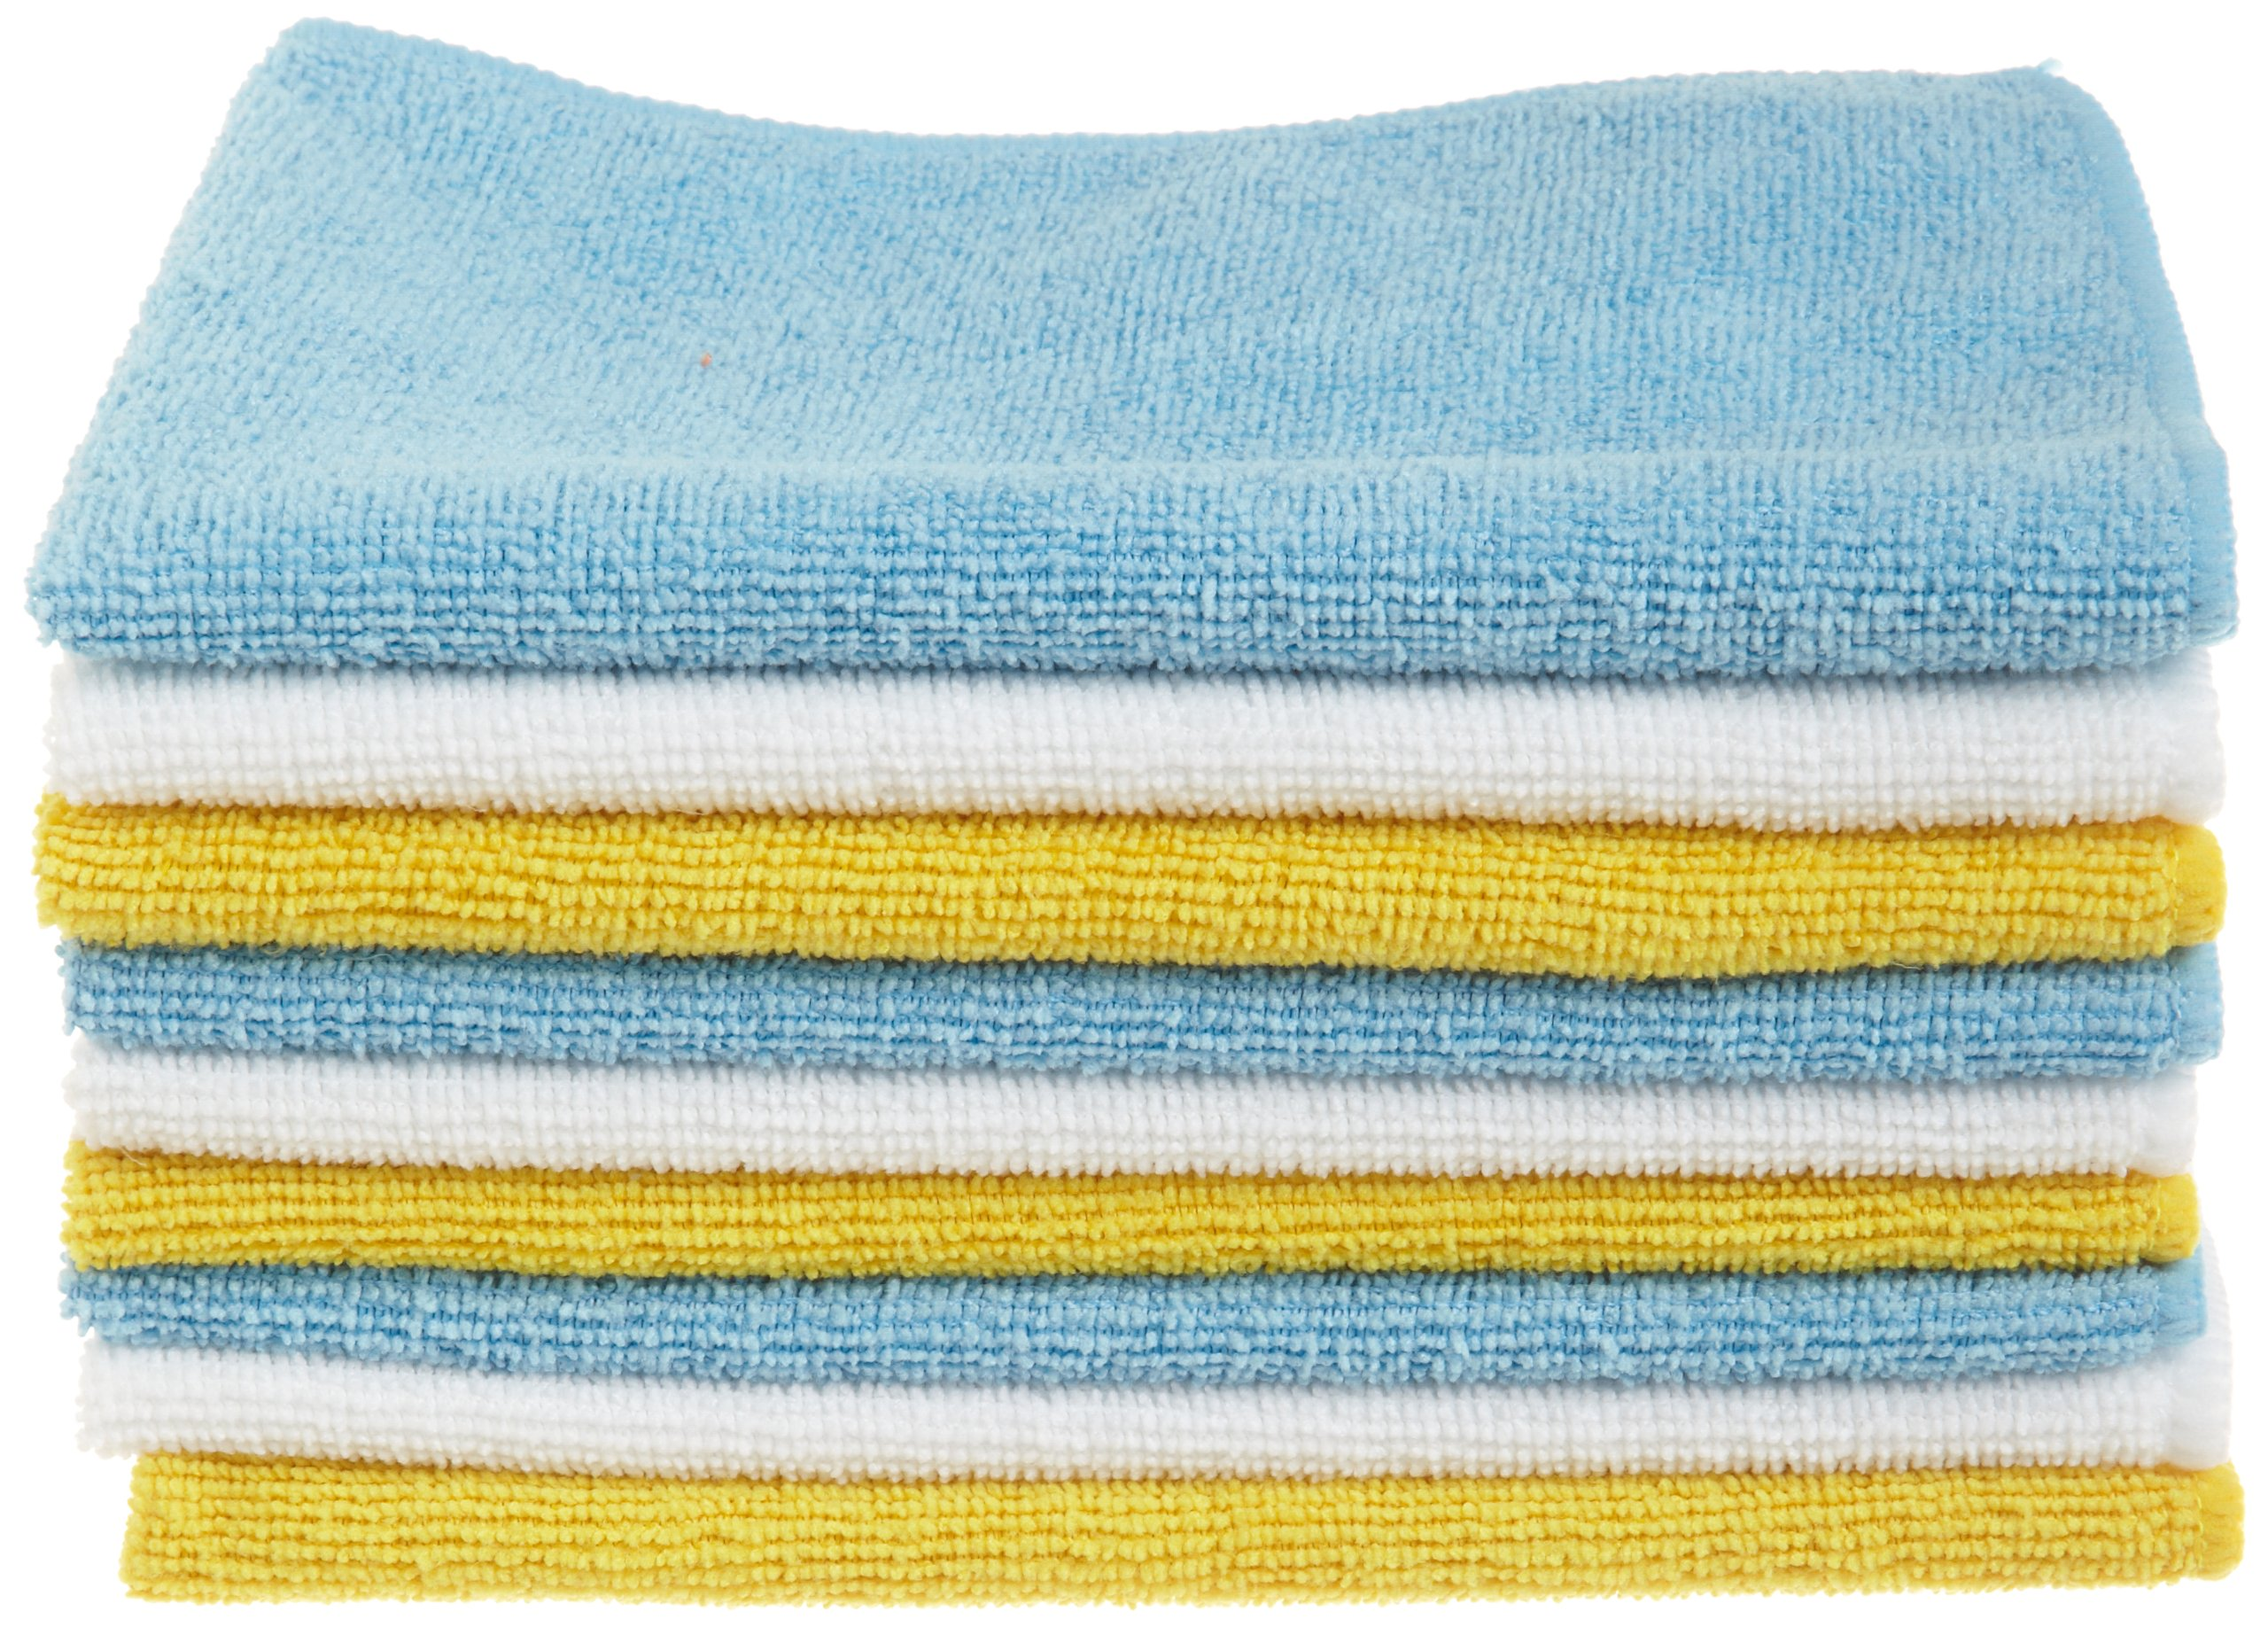 AmazonBasics Microfiber Cleaning Cloth - 24-Pack product image